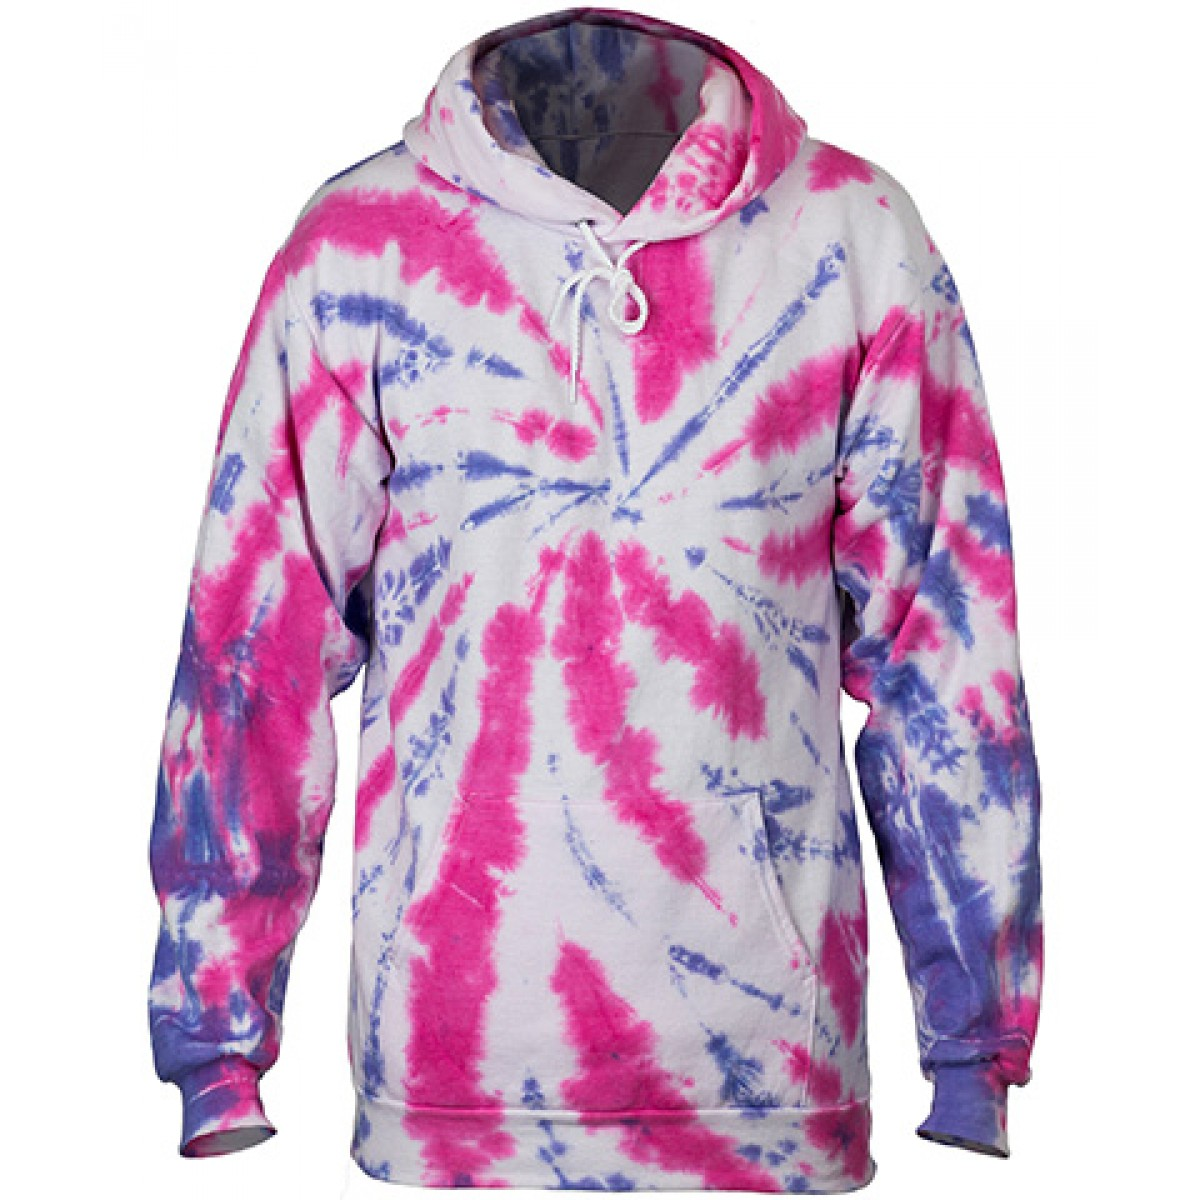 Tie-Dye Pullover Hooded Sweatshirt-Pink-3XL